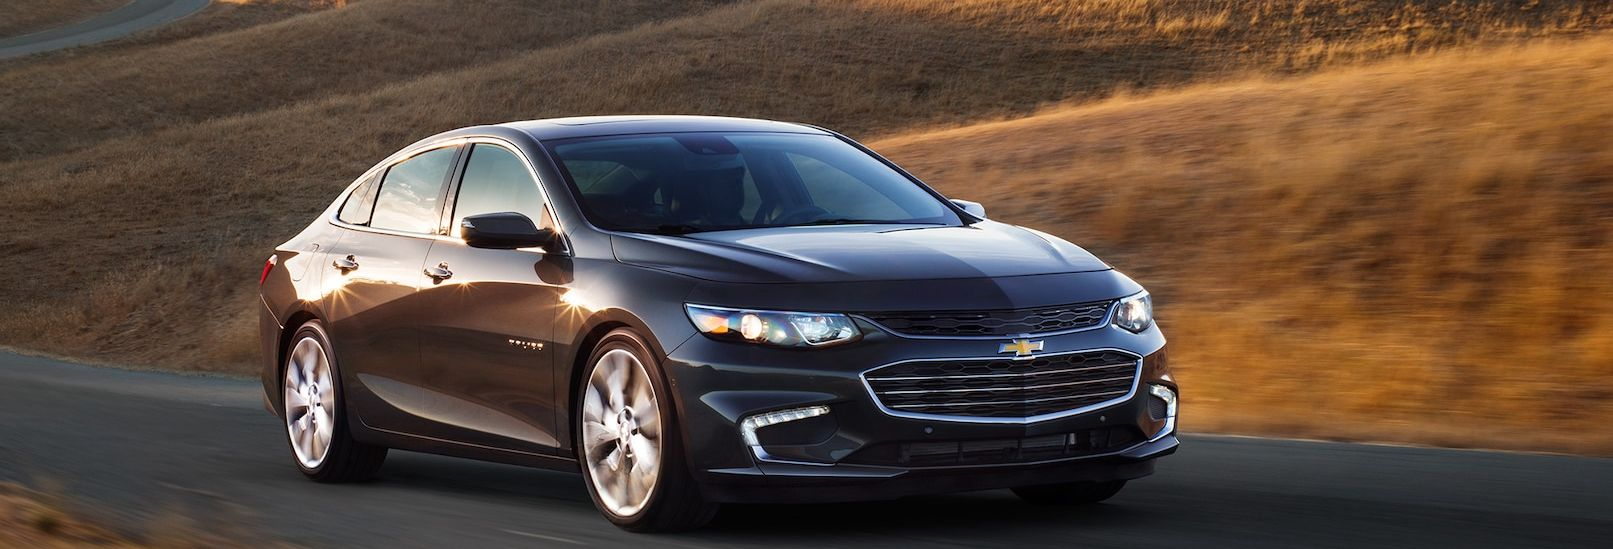 2018 Chevrolet Malibu Financing in Jackson, MI